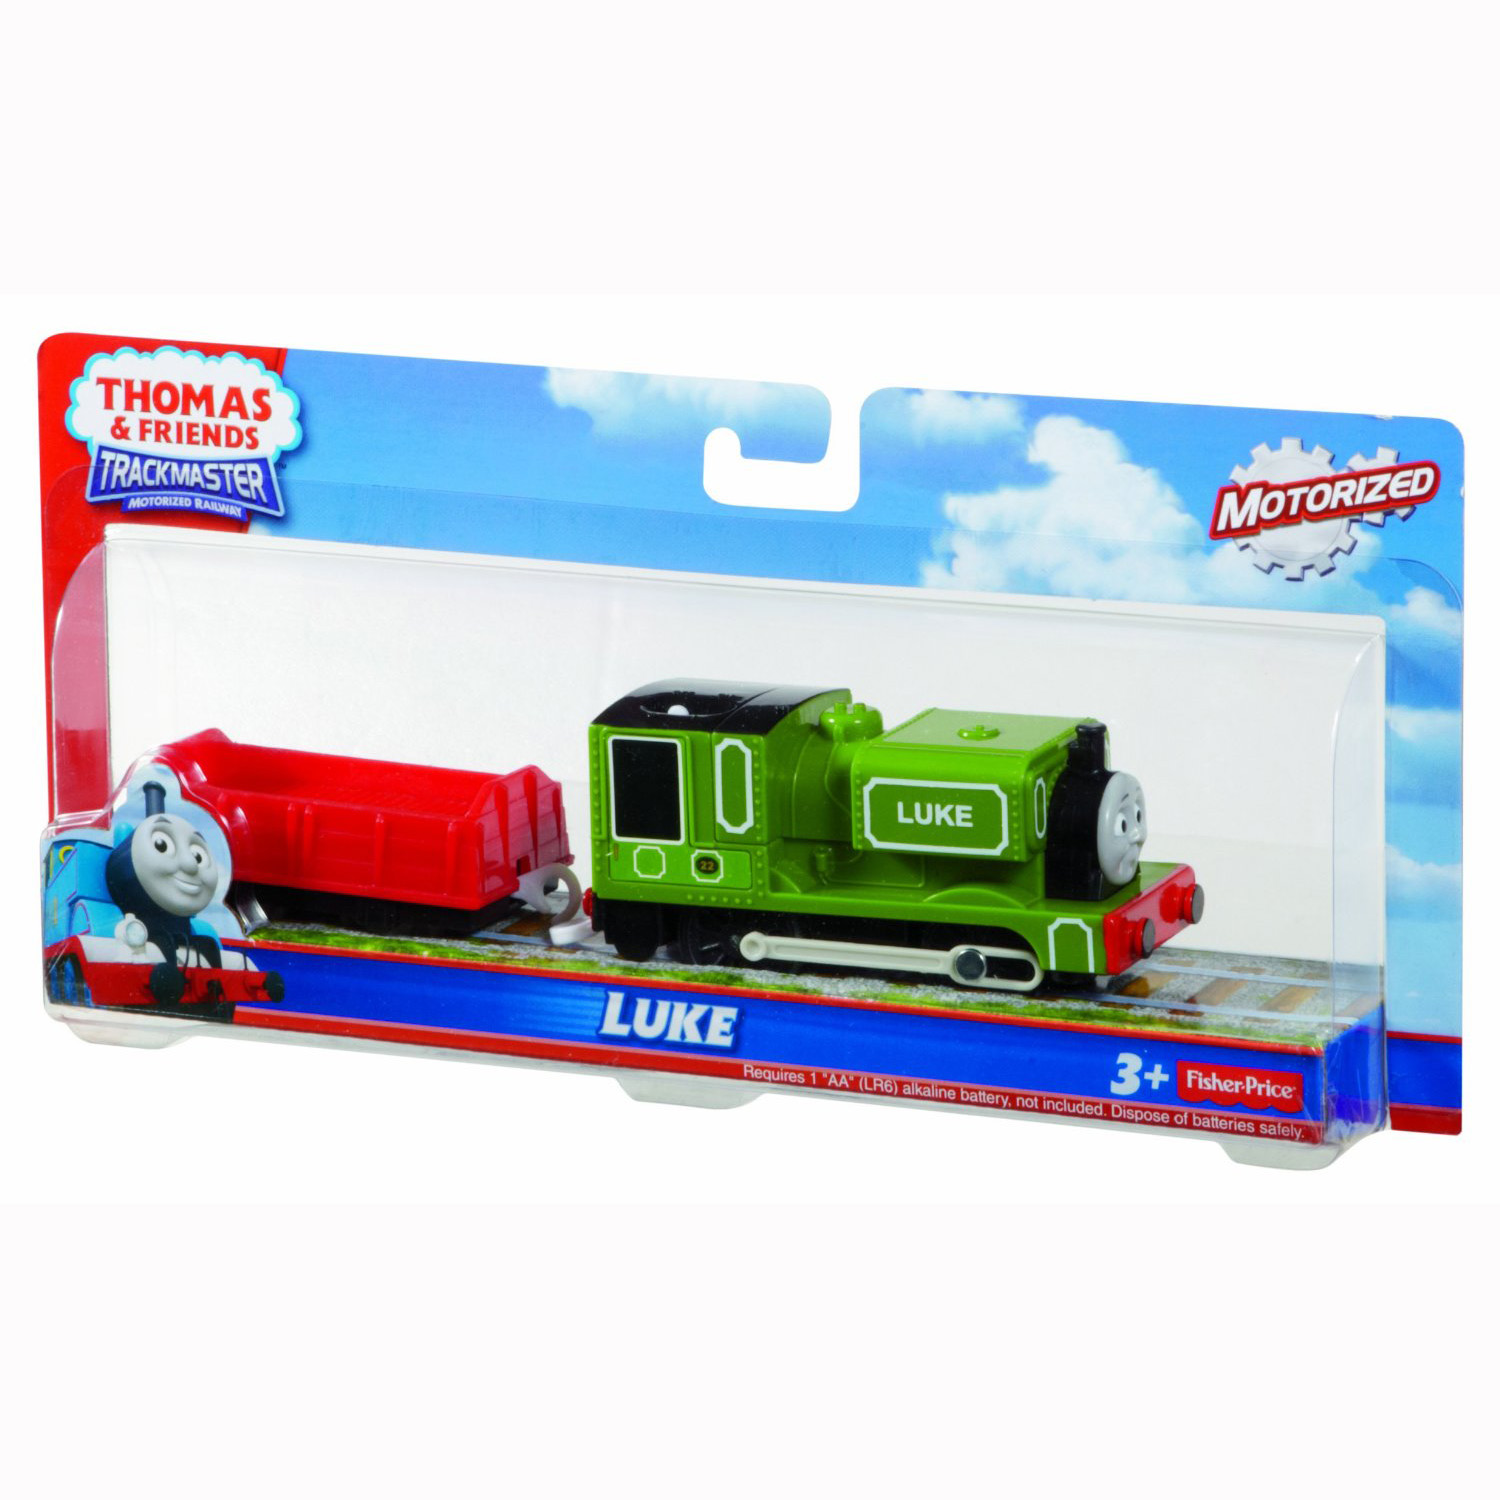 sc 1 st  ToyStop & Thomas and Friends™ TrackMaster™ Trains - Motorized Luke at ToyStop